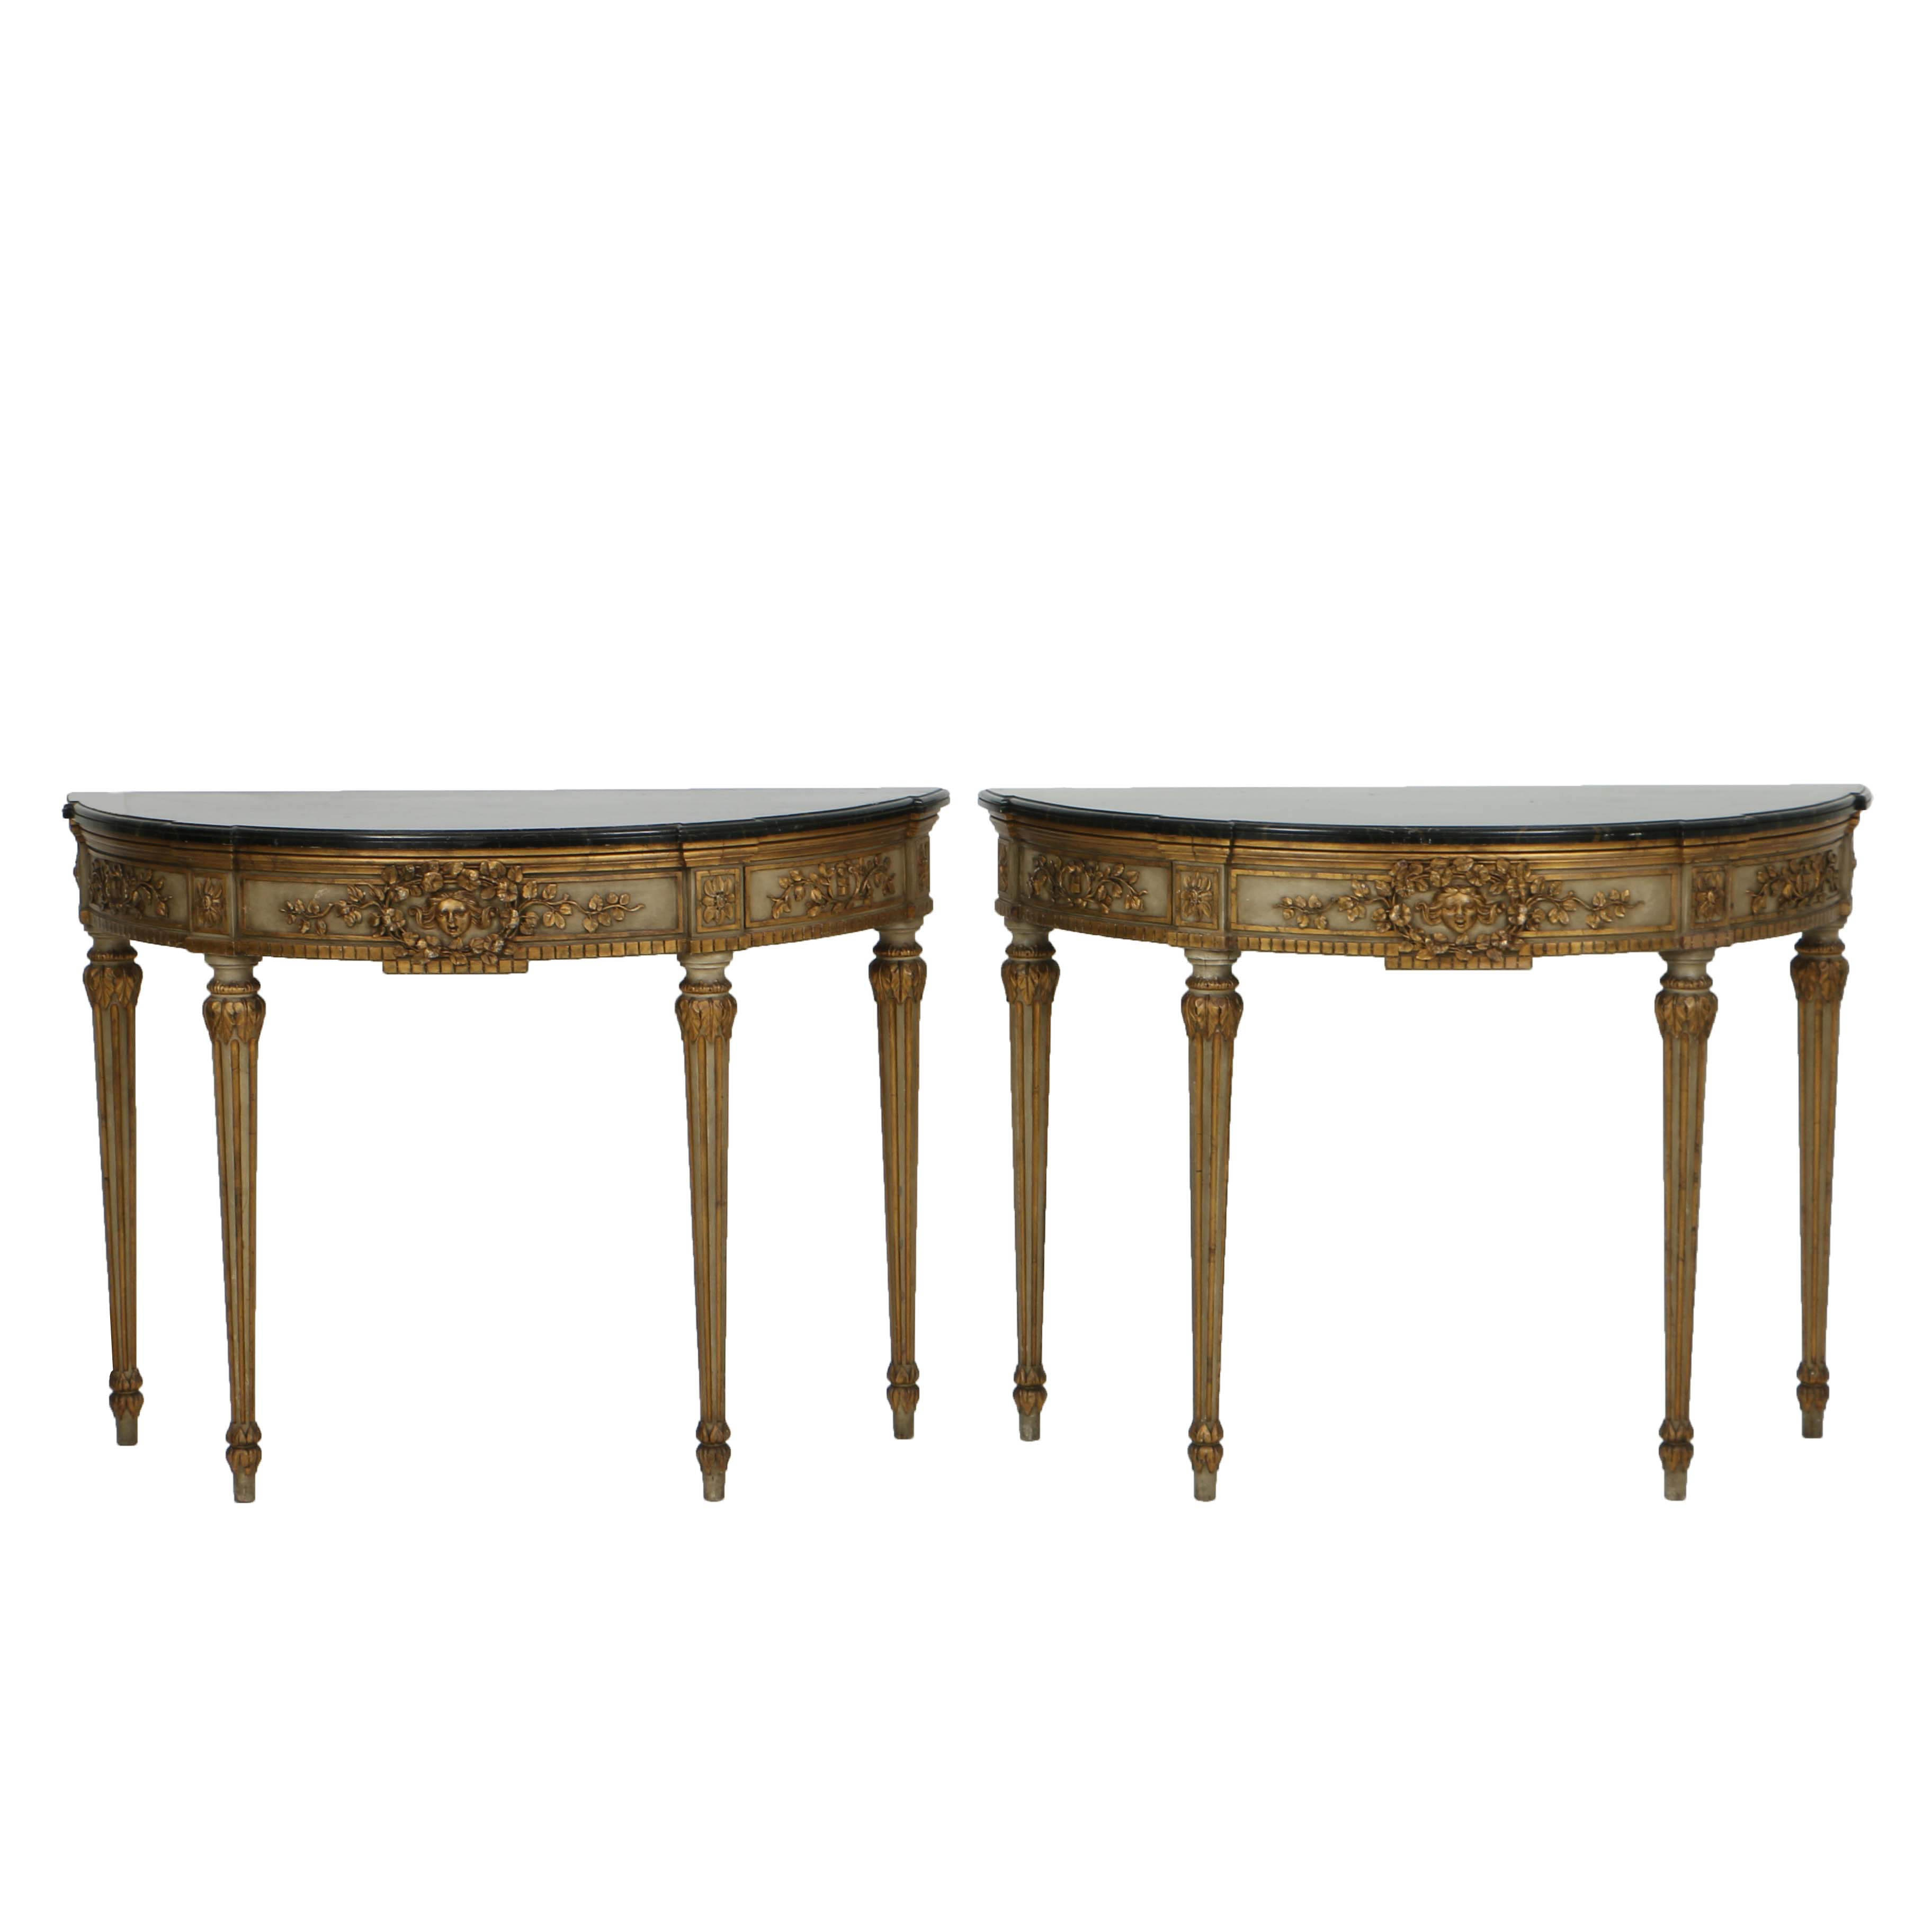 Vintage Neoclassical Style Parcel-Gilt Console Tables with Faux-Marble Tops